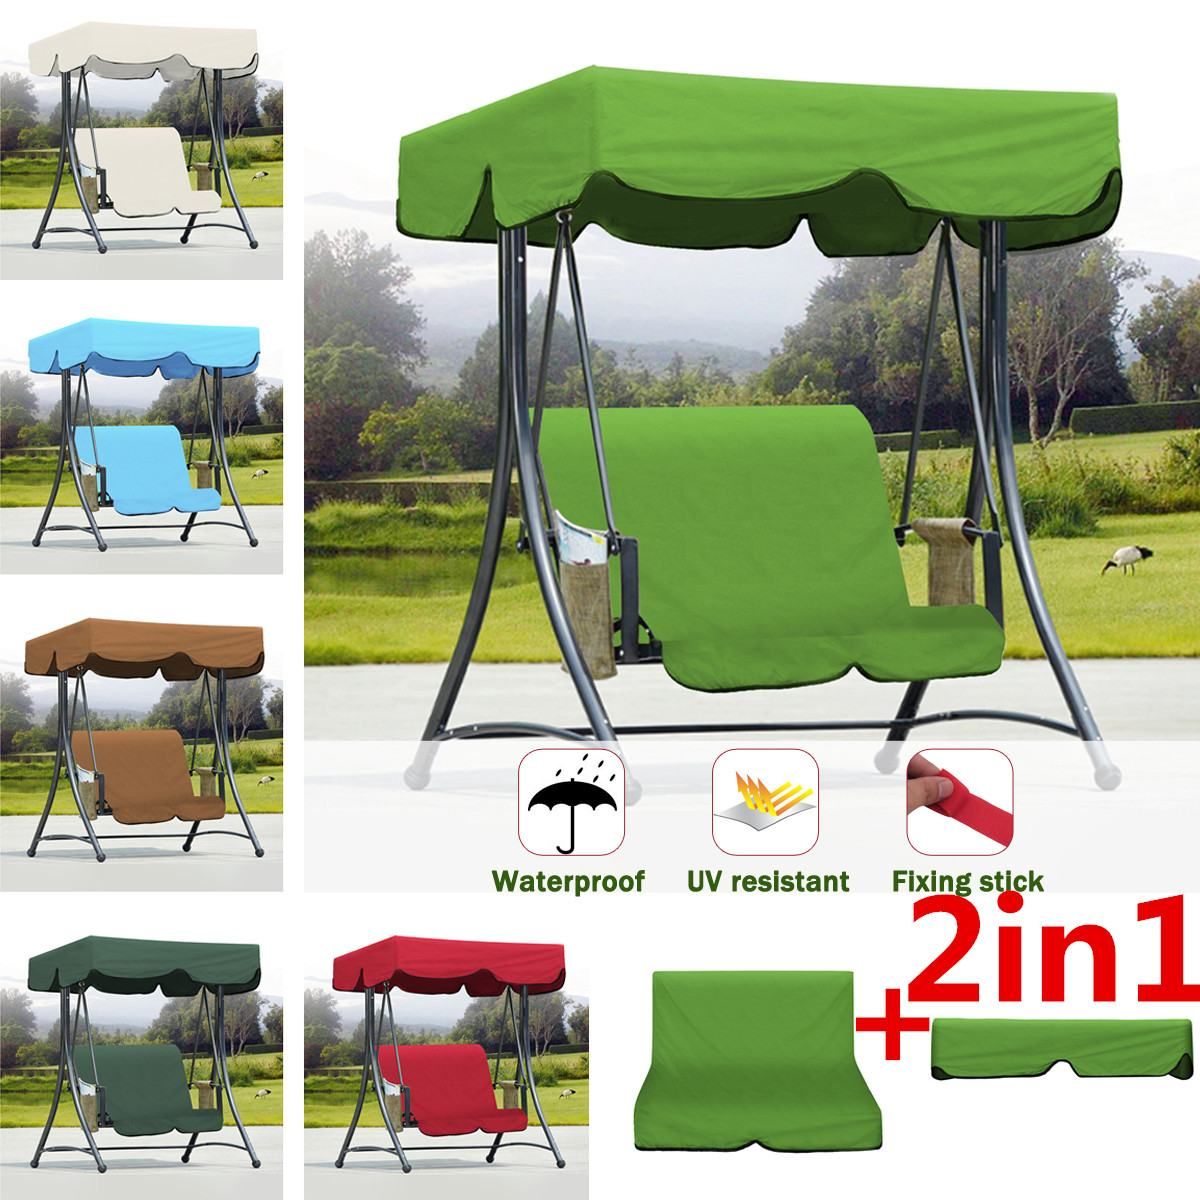 2Pcs Waterproof UV Resistant Swing Hammock Canopy+Chair Cushion Summer Outdoor Indoor title=